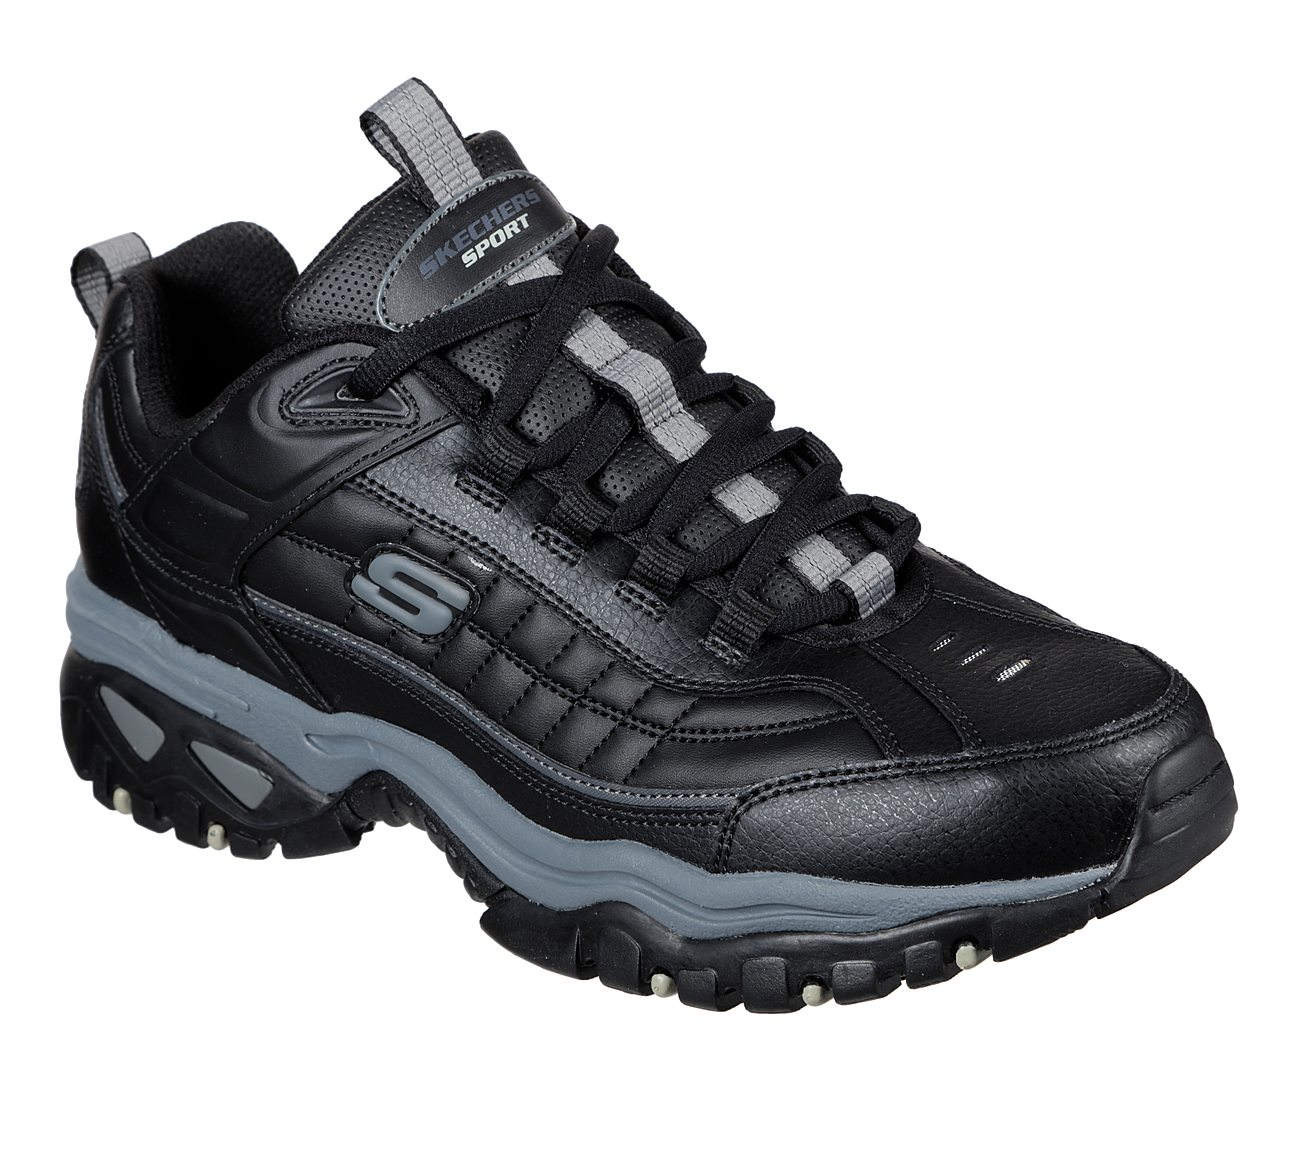 skechers usa sole footware shoe shoes boot trainer leather